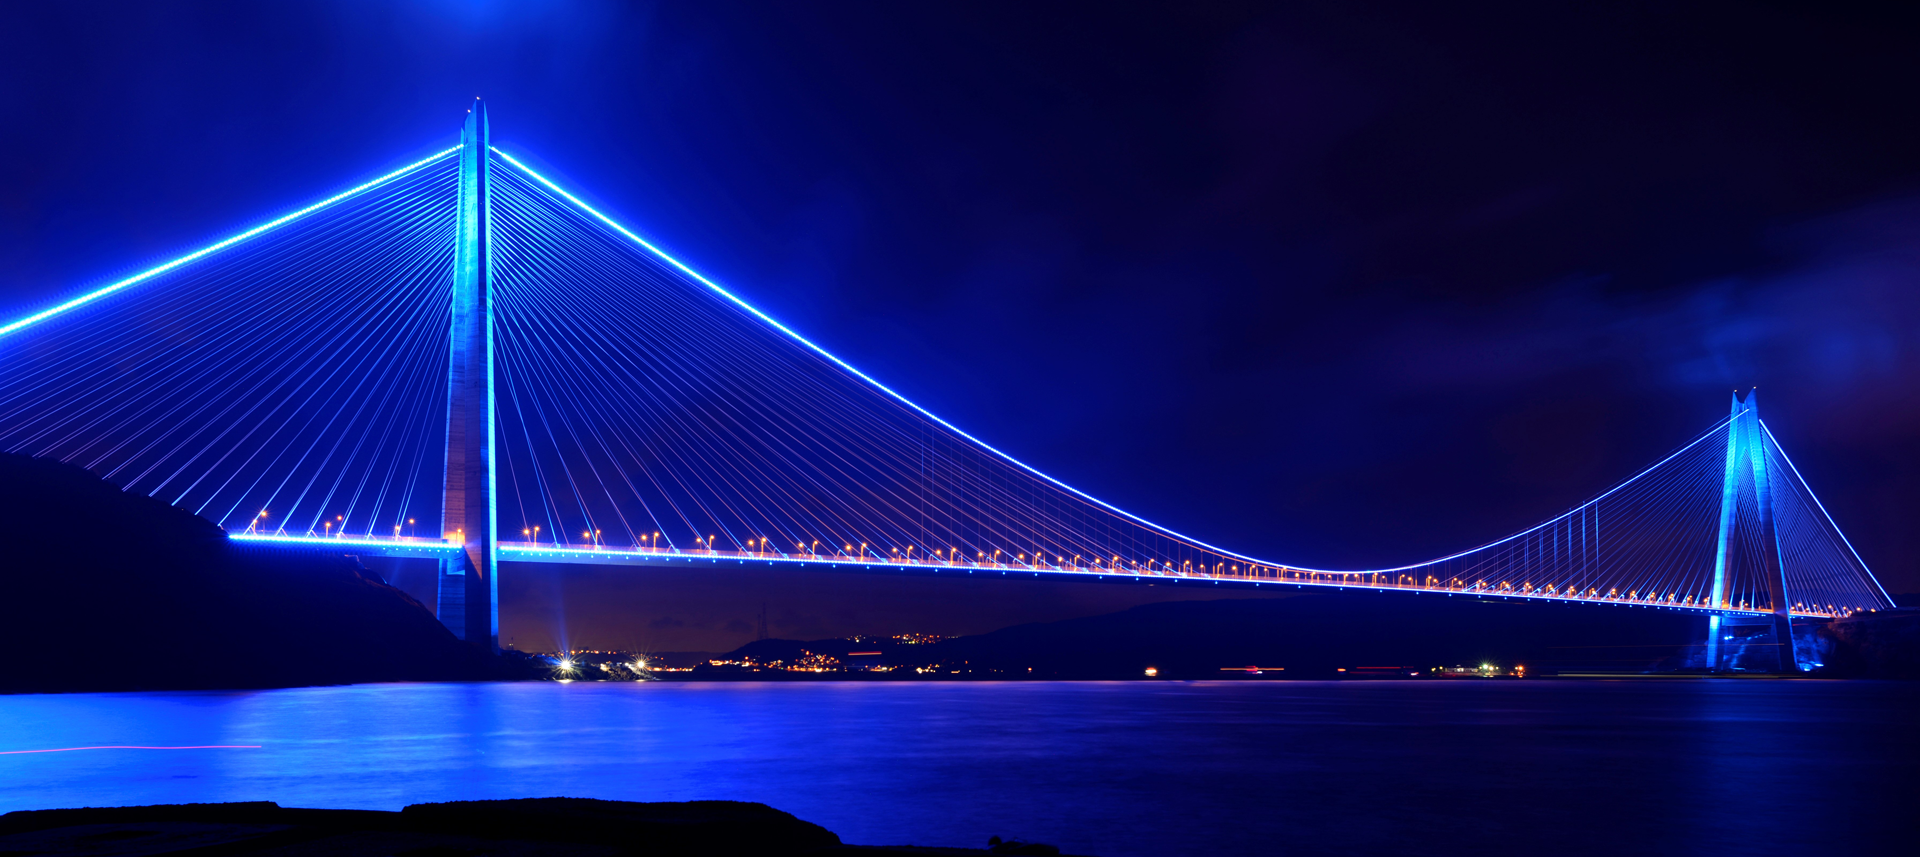 YAVUZ SULTAN SELİM BRIDGE AND NORTHERN RING MOTORWAY